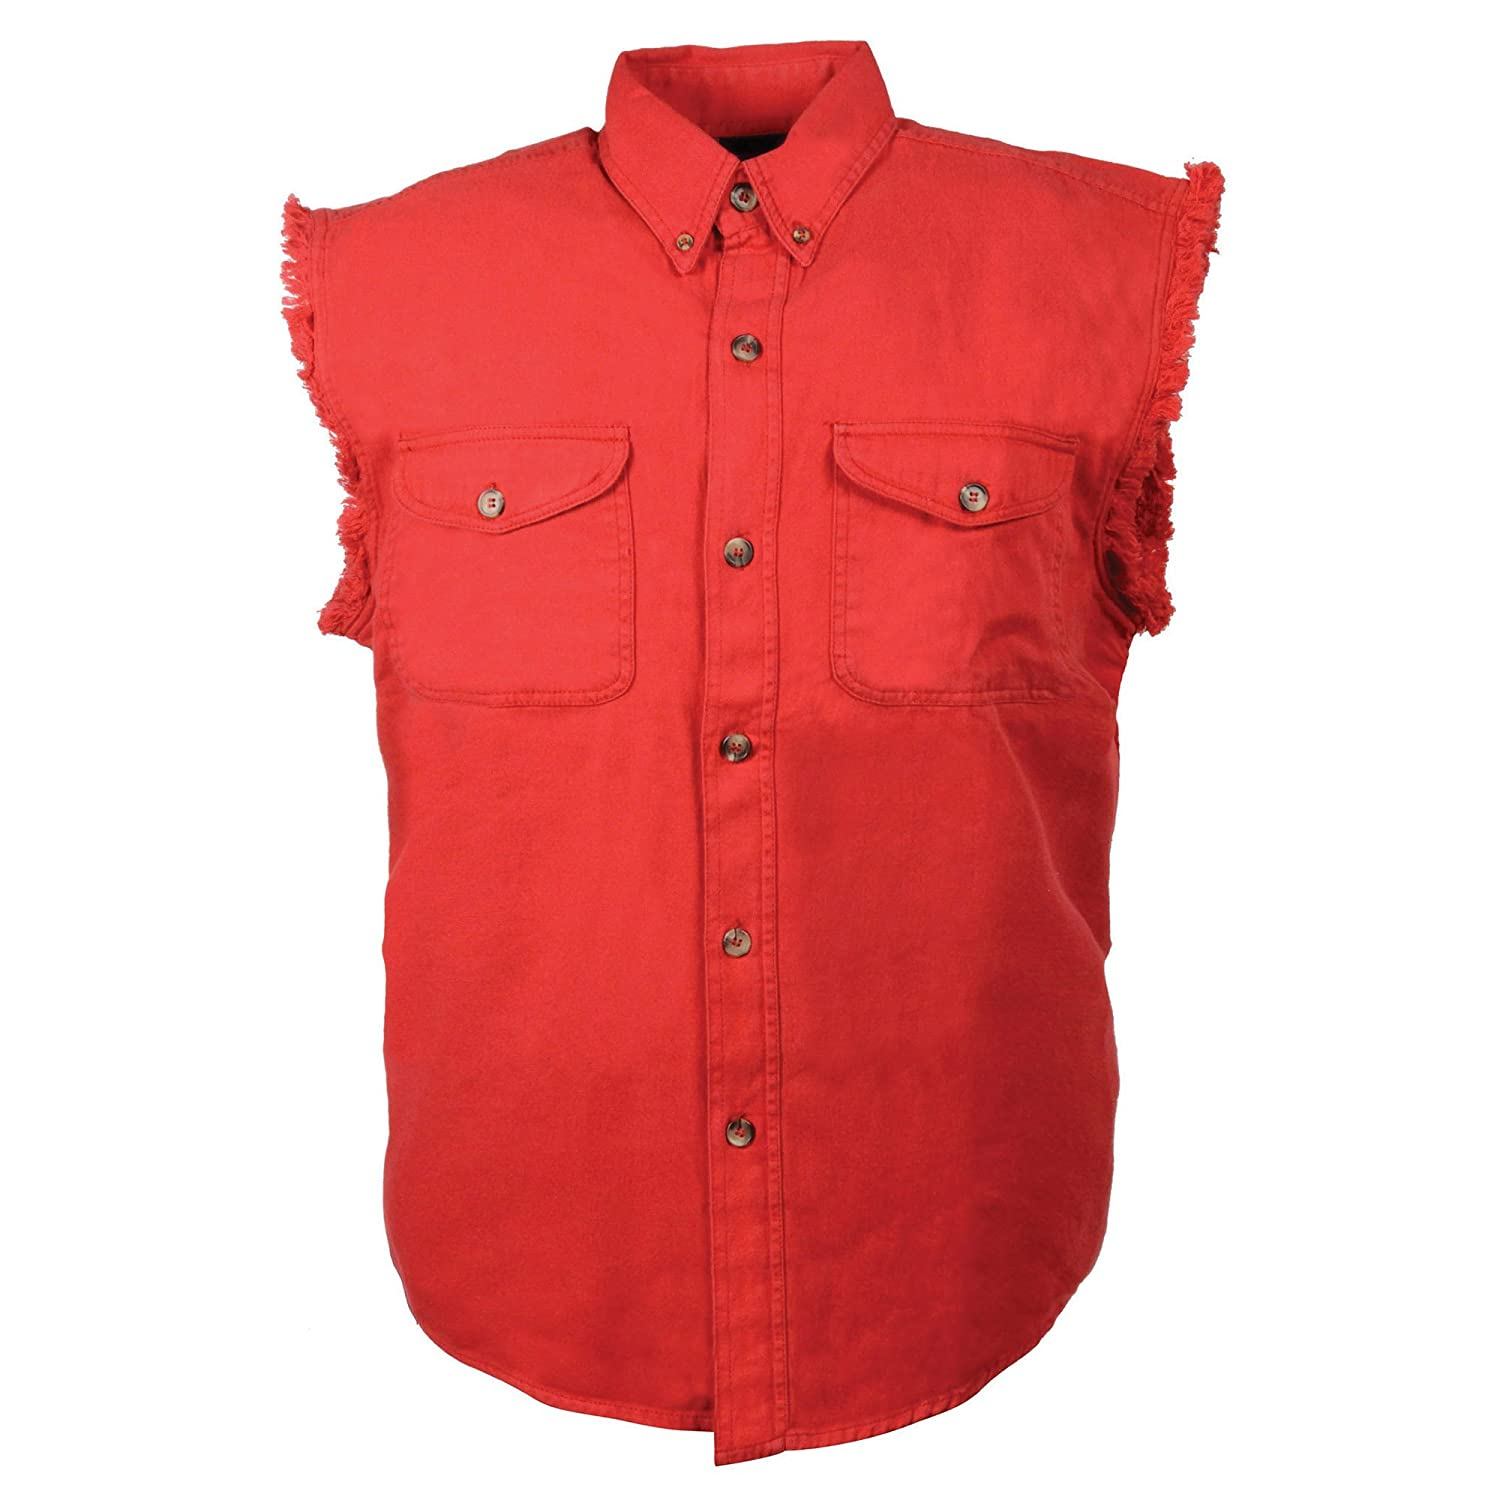 Mens Biker Riding Red Cotton Cut Off Half Sleeveless Shirt with Frayed Sleeves